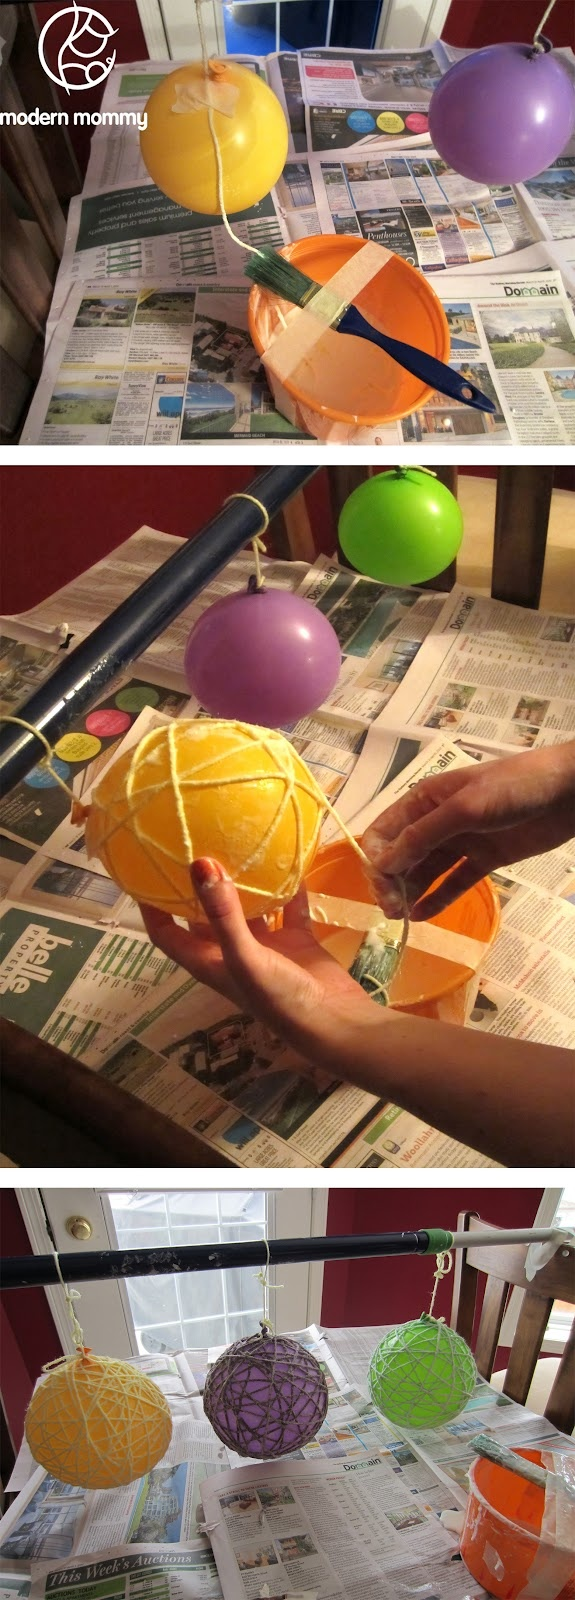 Yarn ball tutorial. Great tip if you only have one set of hands.